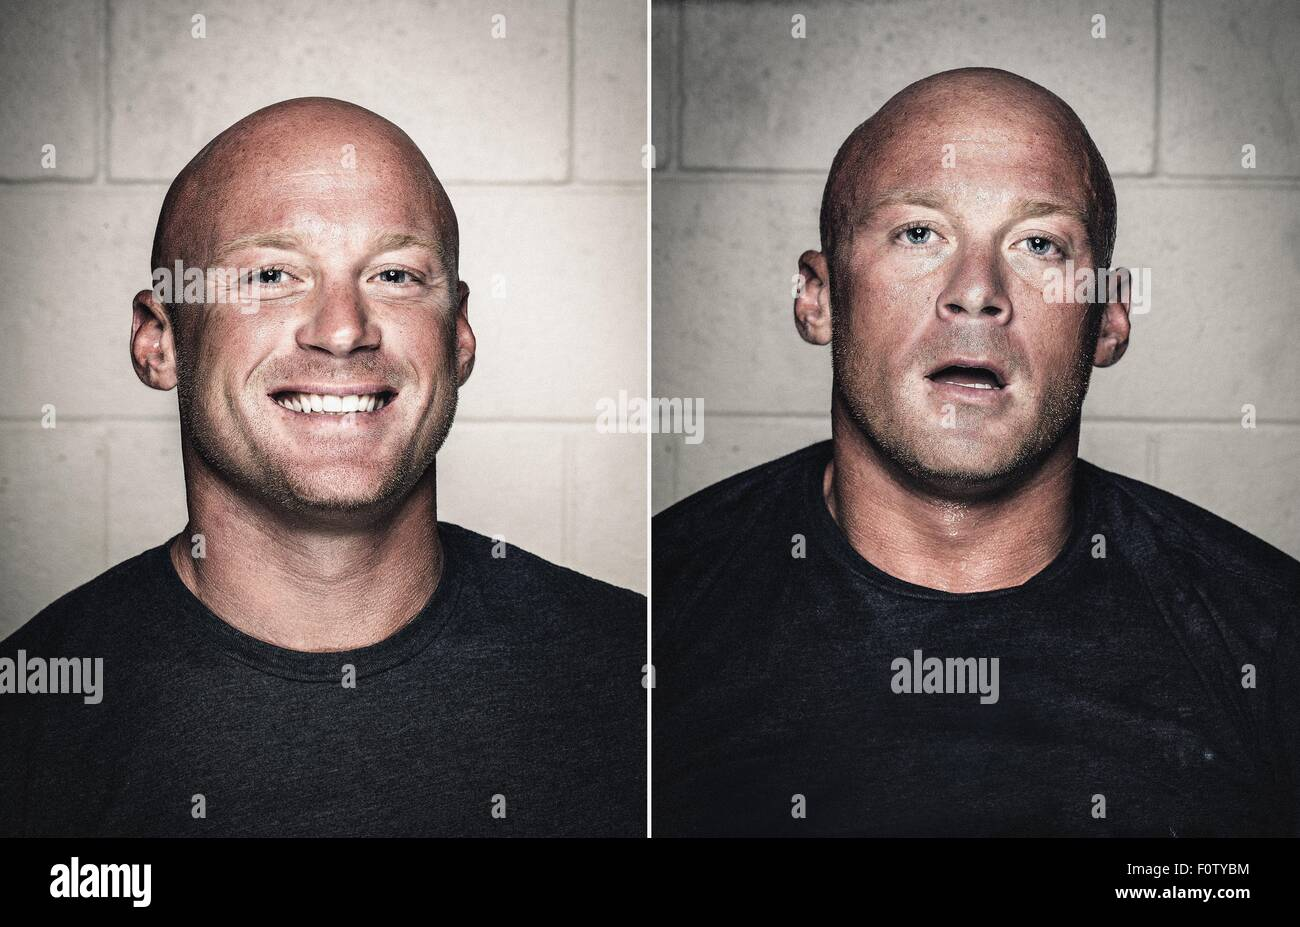 Portraits of young bald man before and after workout - Stock Image